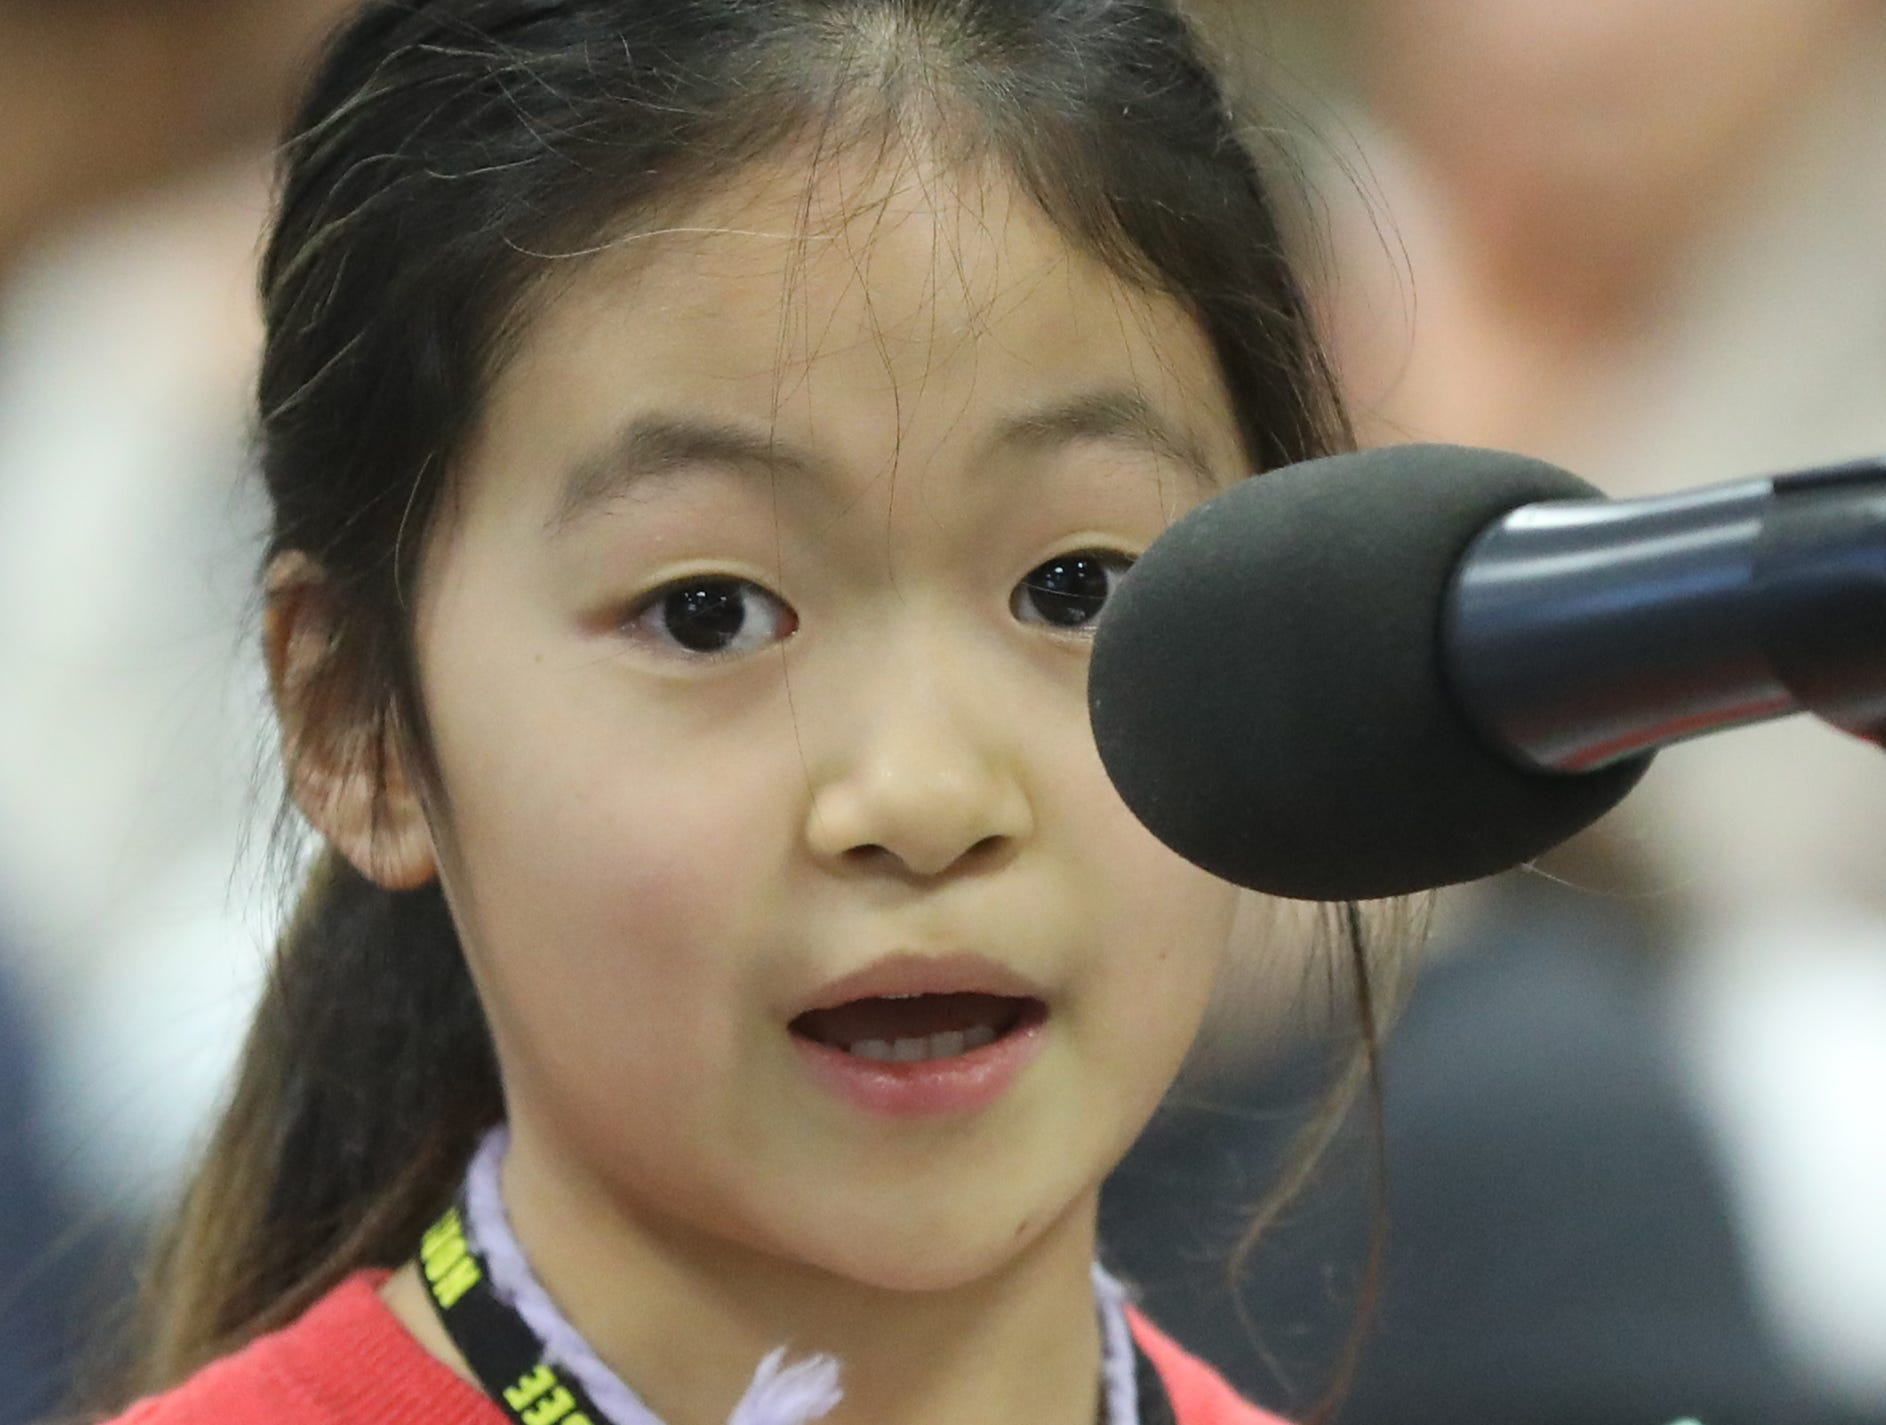 Elizabeth Song, of Haworth, competes in the first round of the 2019 North Jersey Spelling Bee, in Paramus. Thursday, March 14, 2019